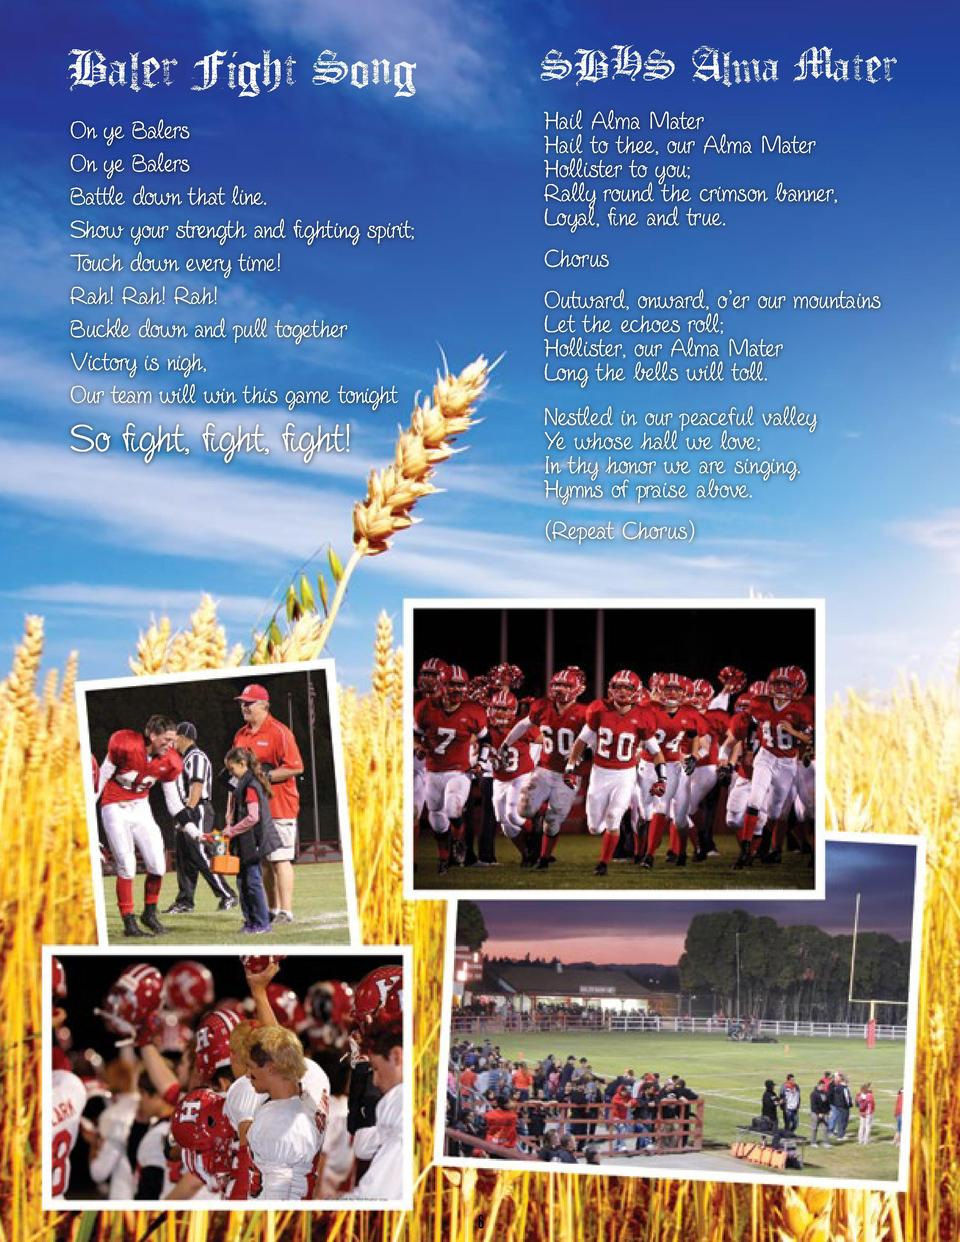 Baler Fight Song  SBHS Alma Mater  On ye Balers On ye Balers Battle down that line. Show your strength and    ghting spiri...